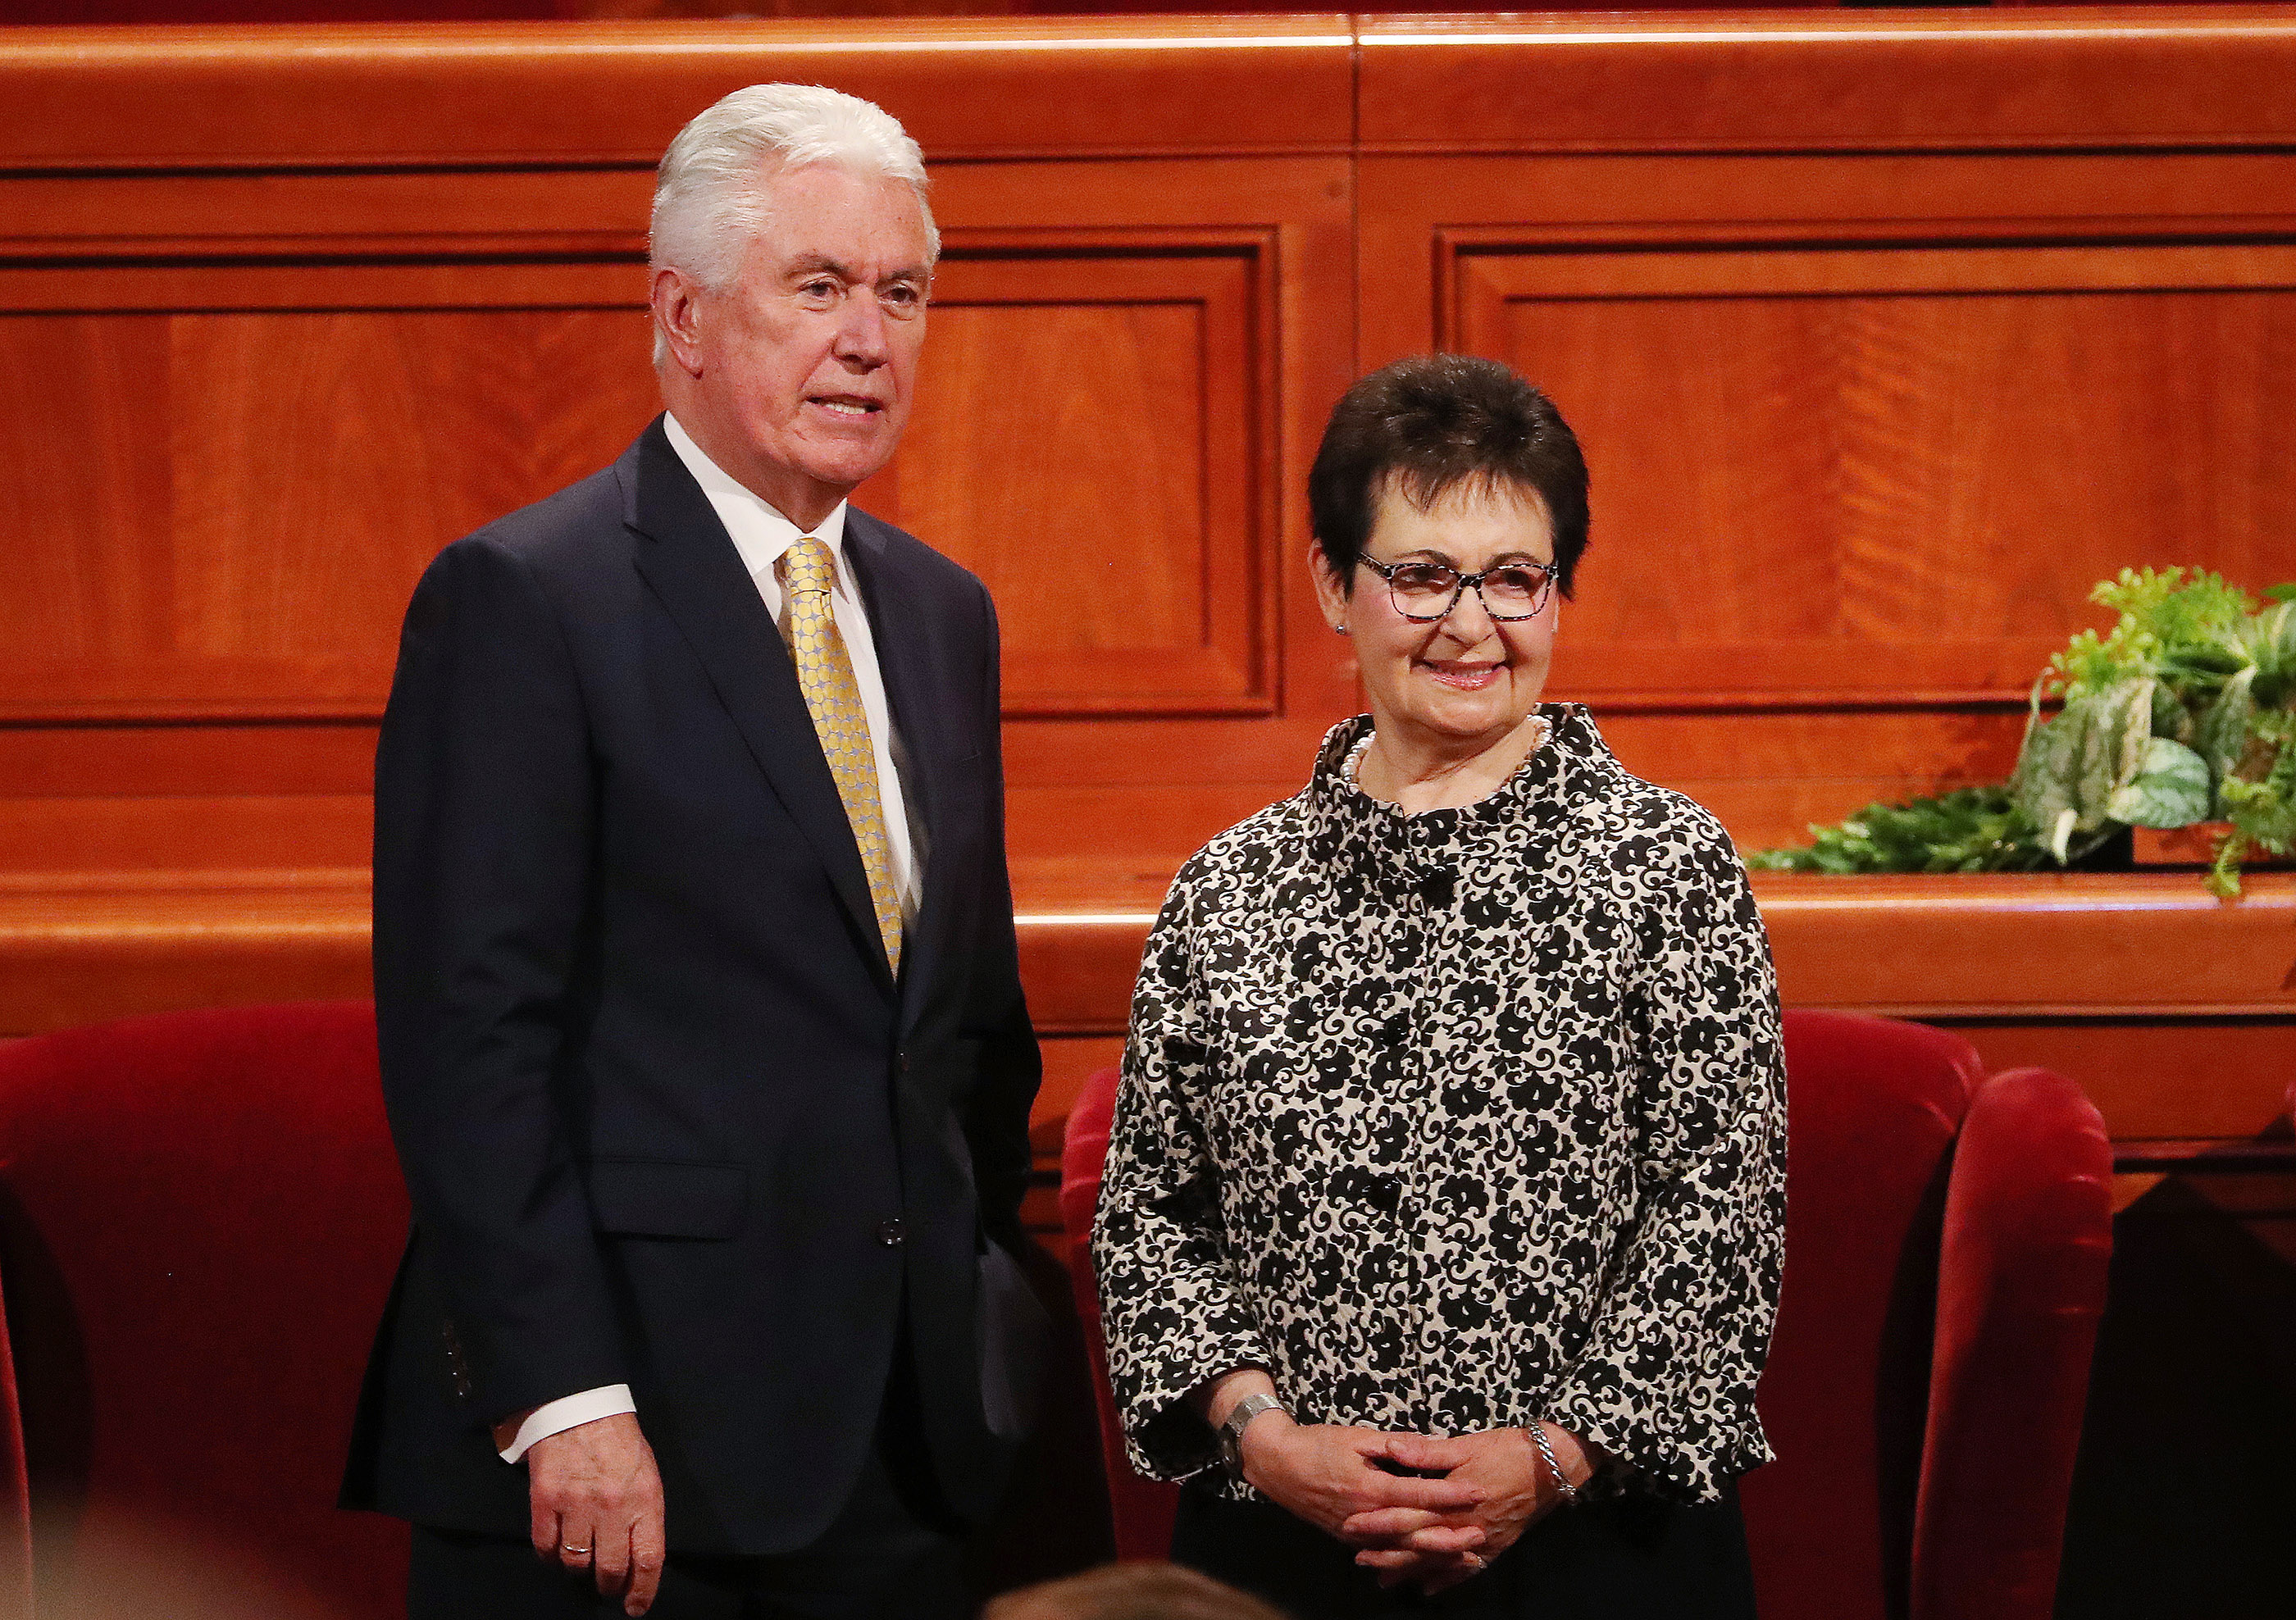 Elder Dieter F. Uchtdorf and his wife Harriet look over the attendees prior to the 189th Annual General Conference of The Church of Jesus Christ of Latter-day Saints in Salt Lake City on Saturday, April 6, 2019.